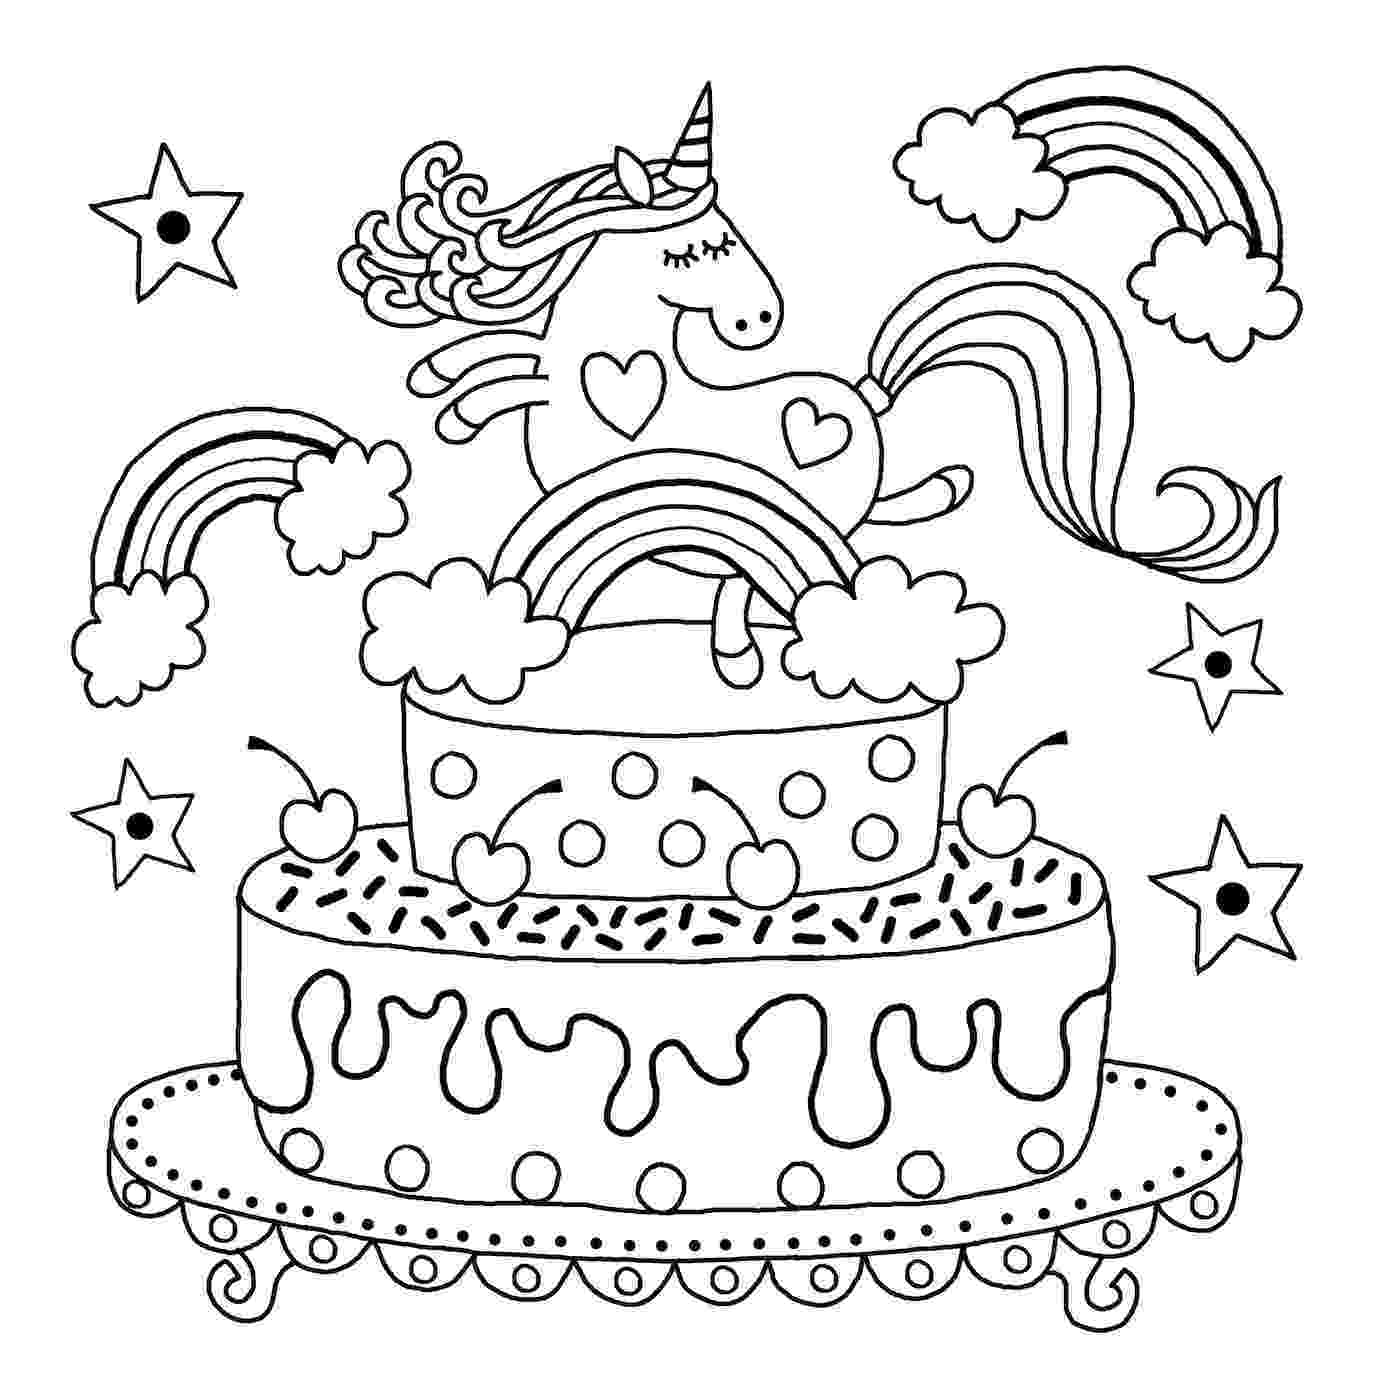 unicorns coloring pages downloadable unicorn colouring page michael o39mara books pages coloring unicorns